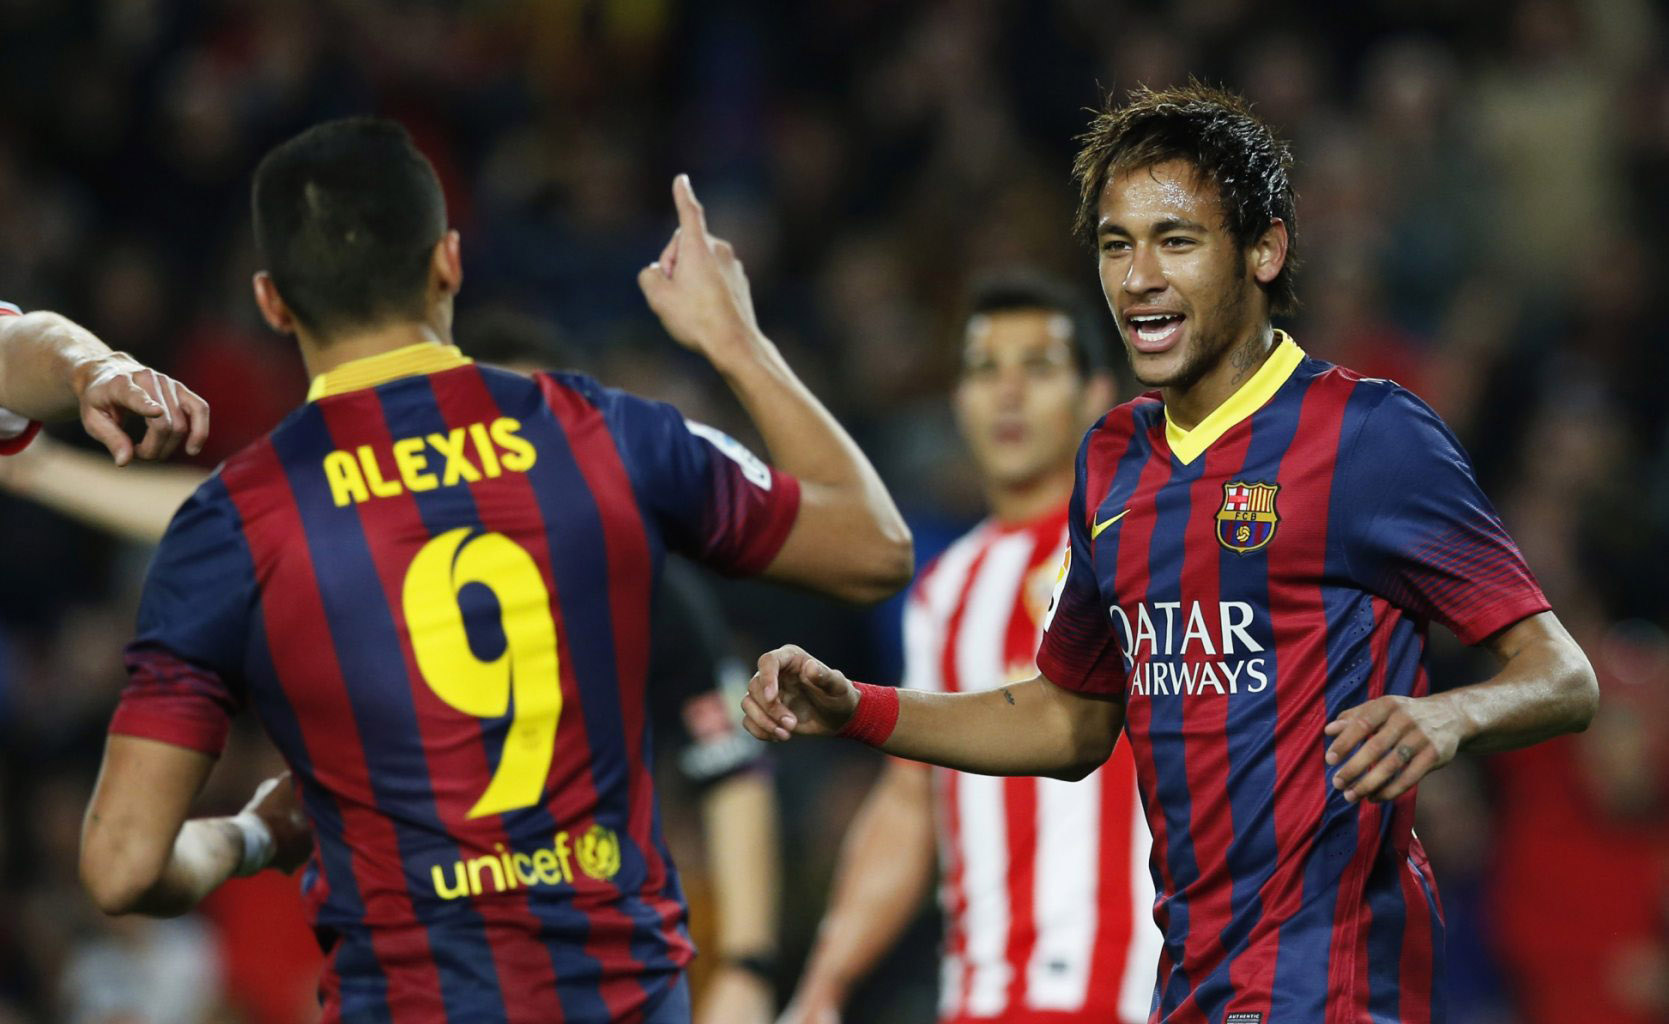 Alexis Sánchez and Neymar Jr